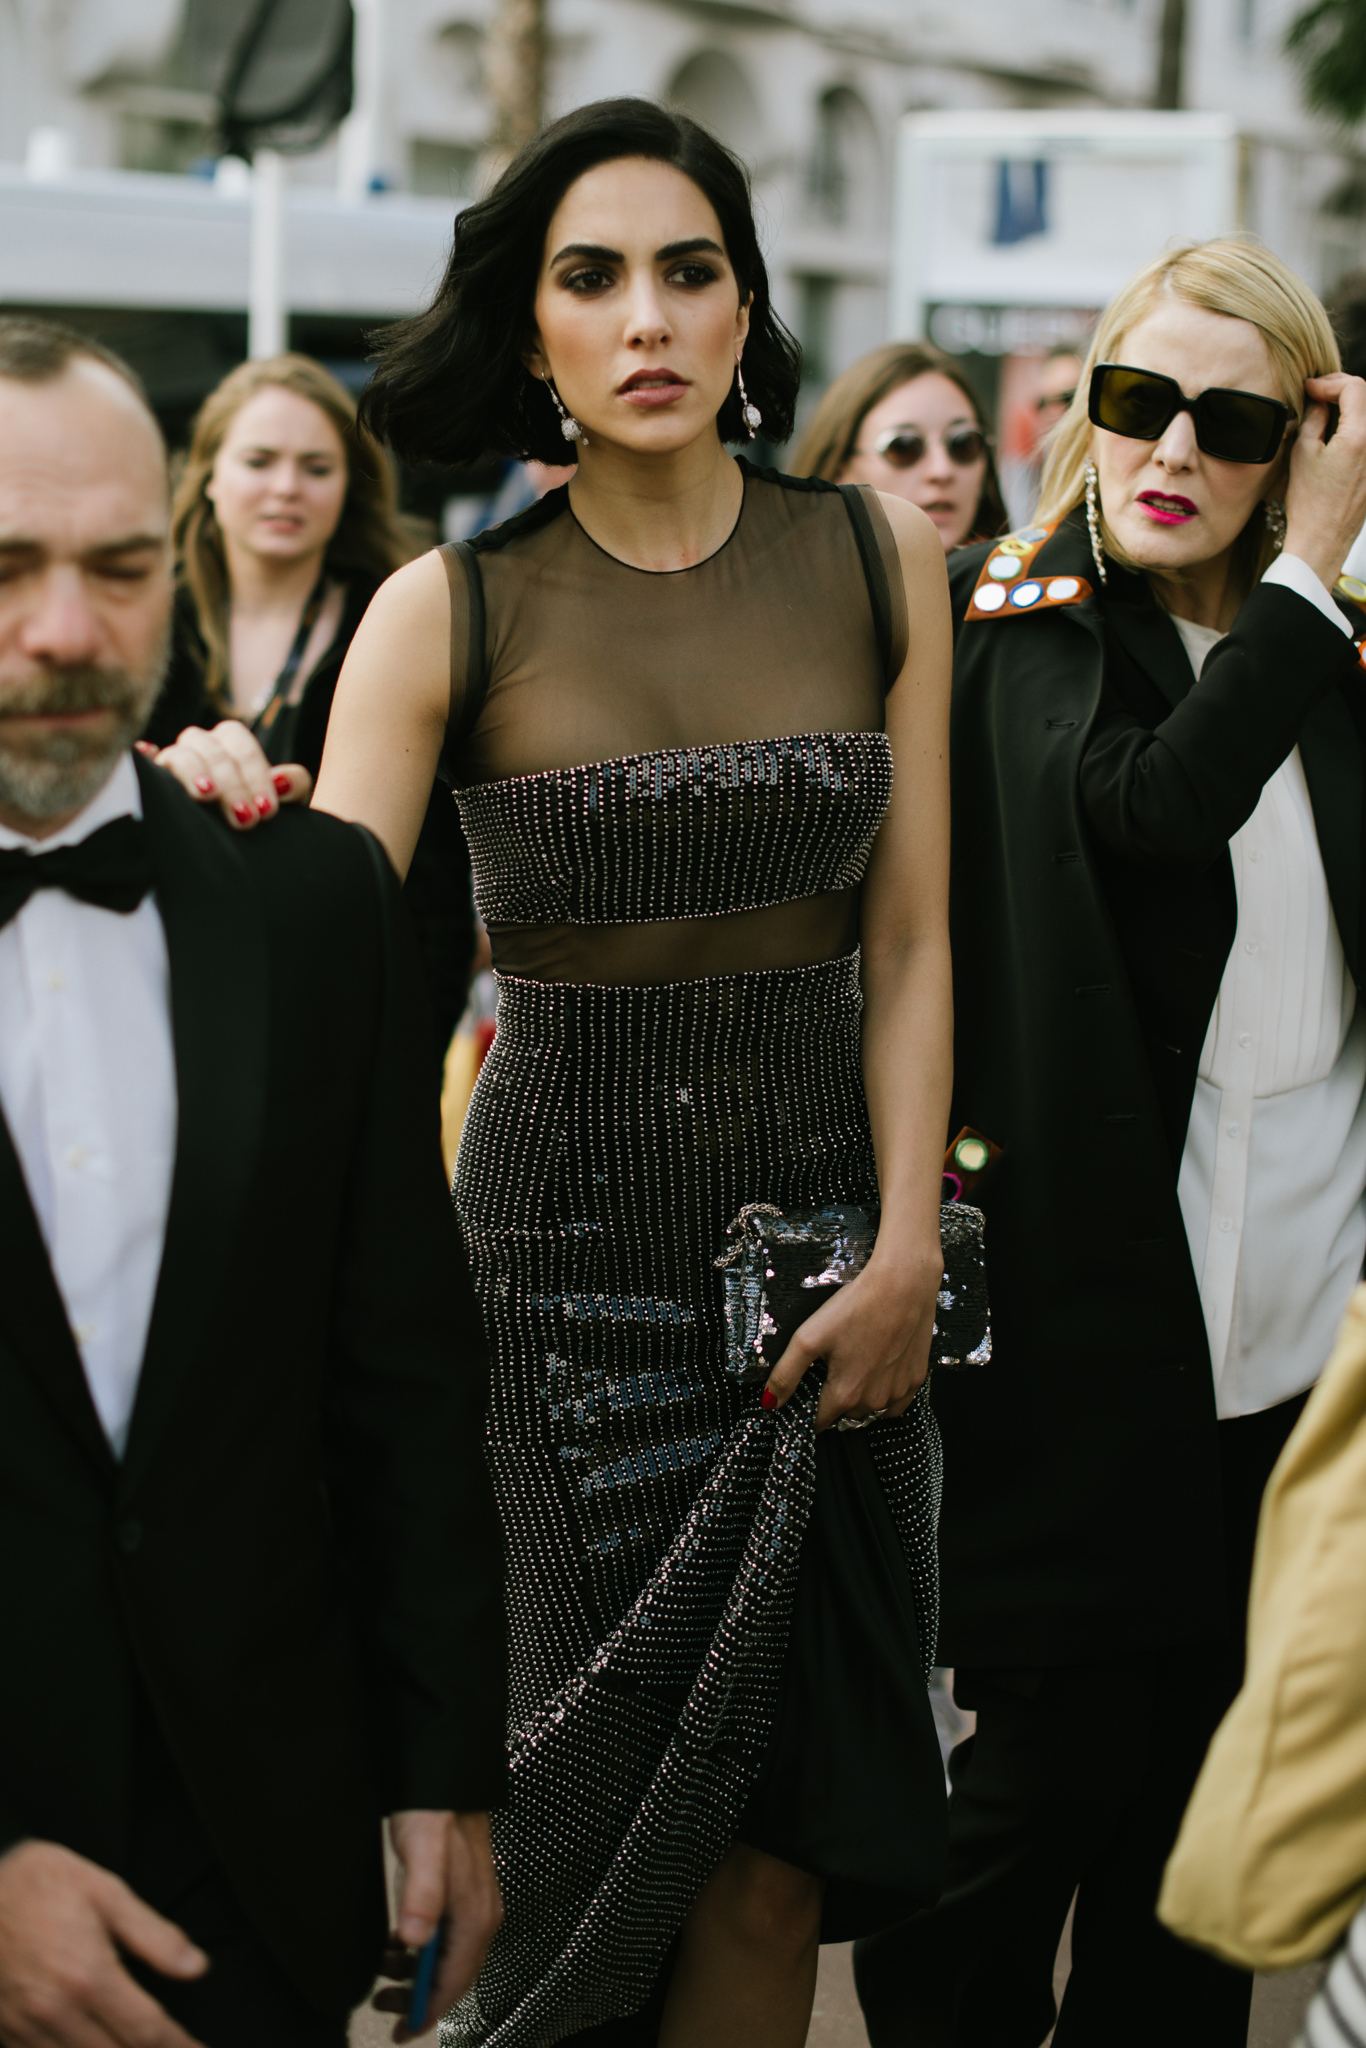 Street style at 2019 Cannes Film Festival